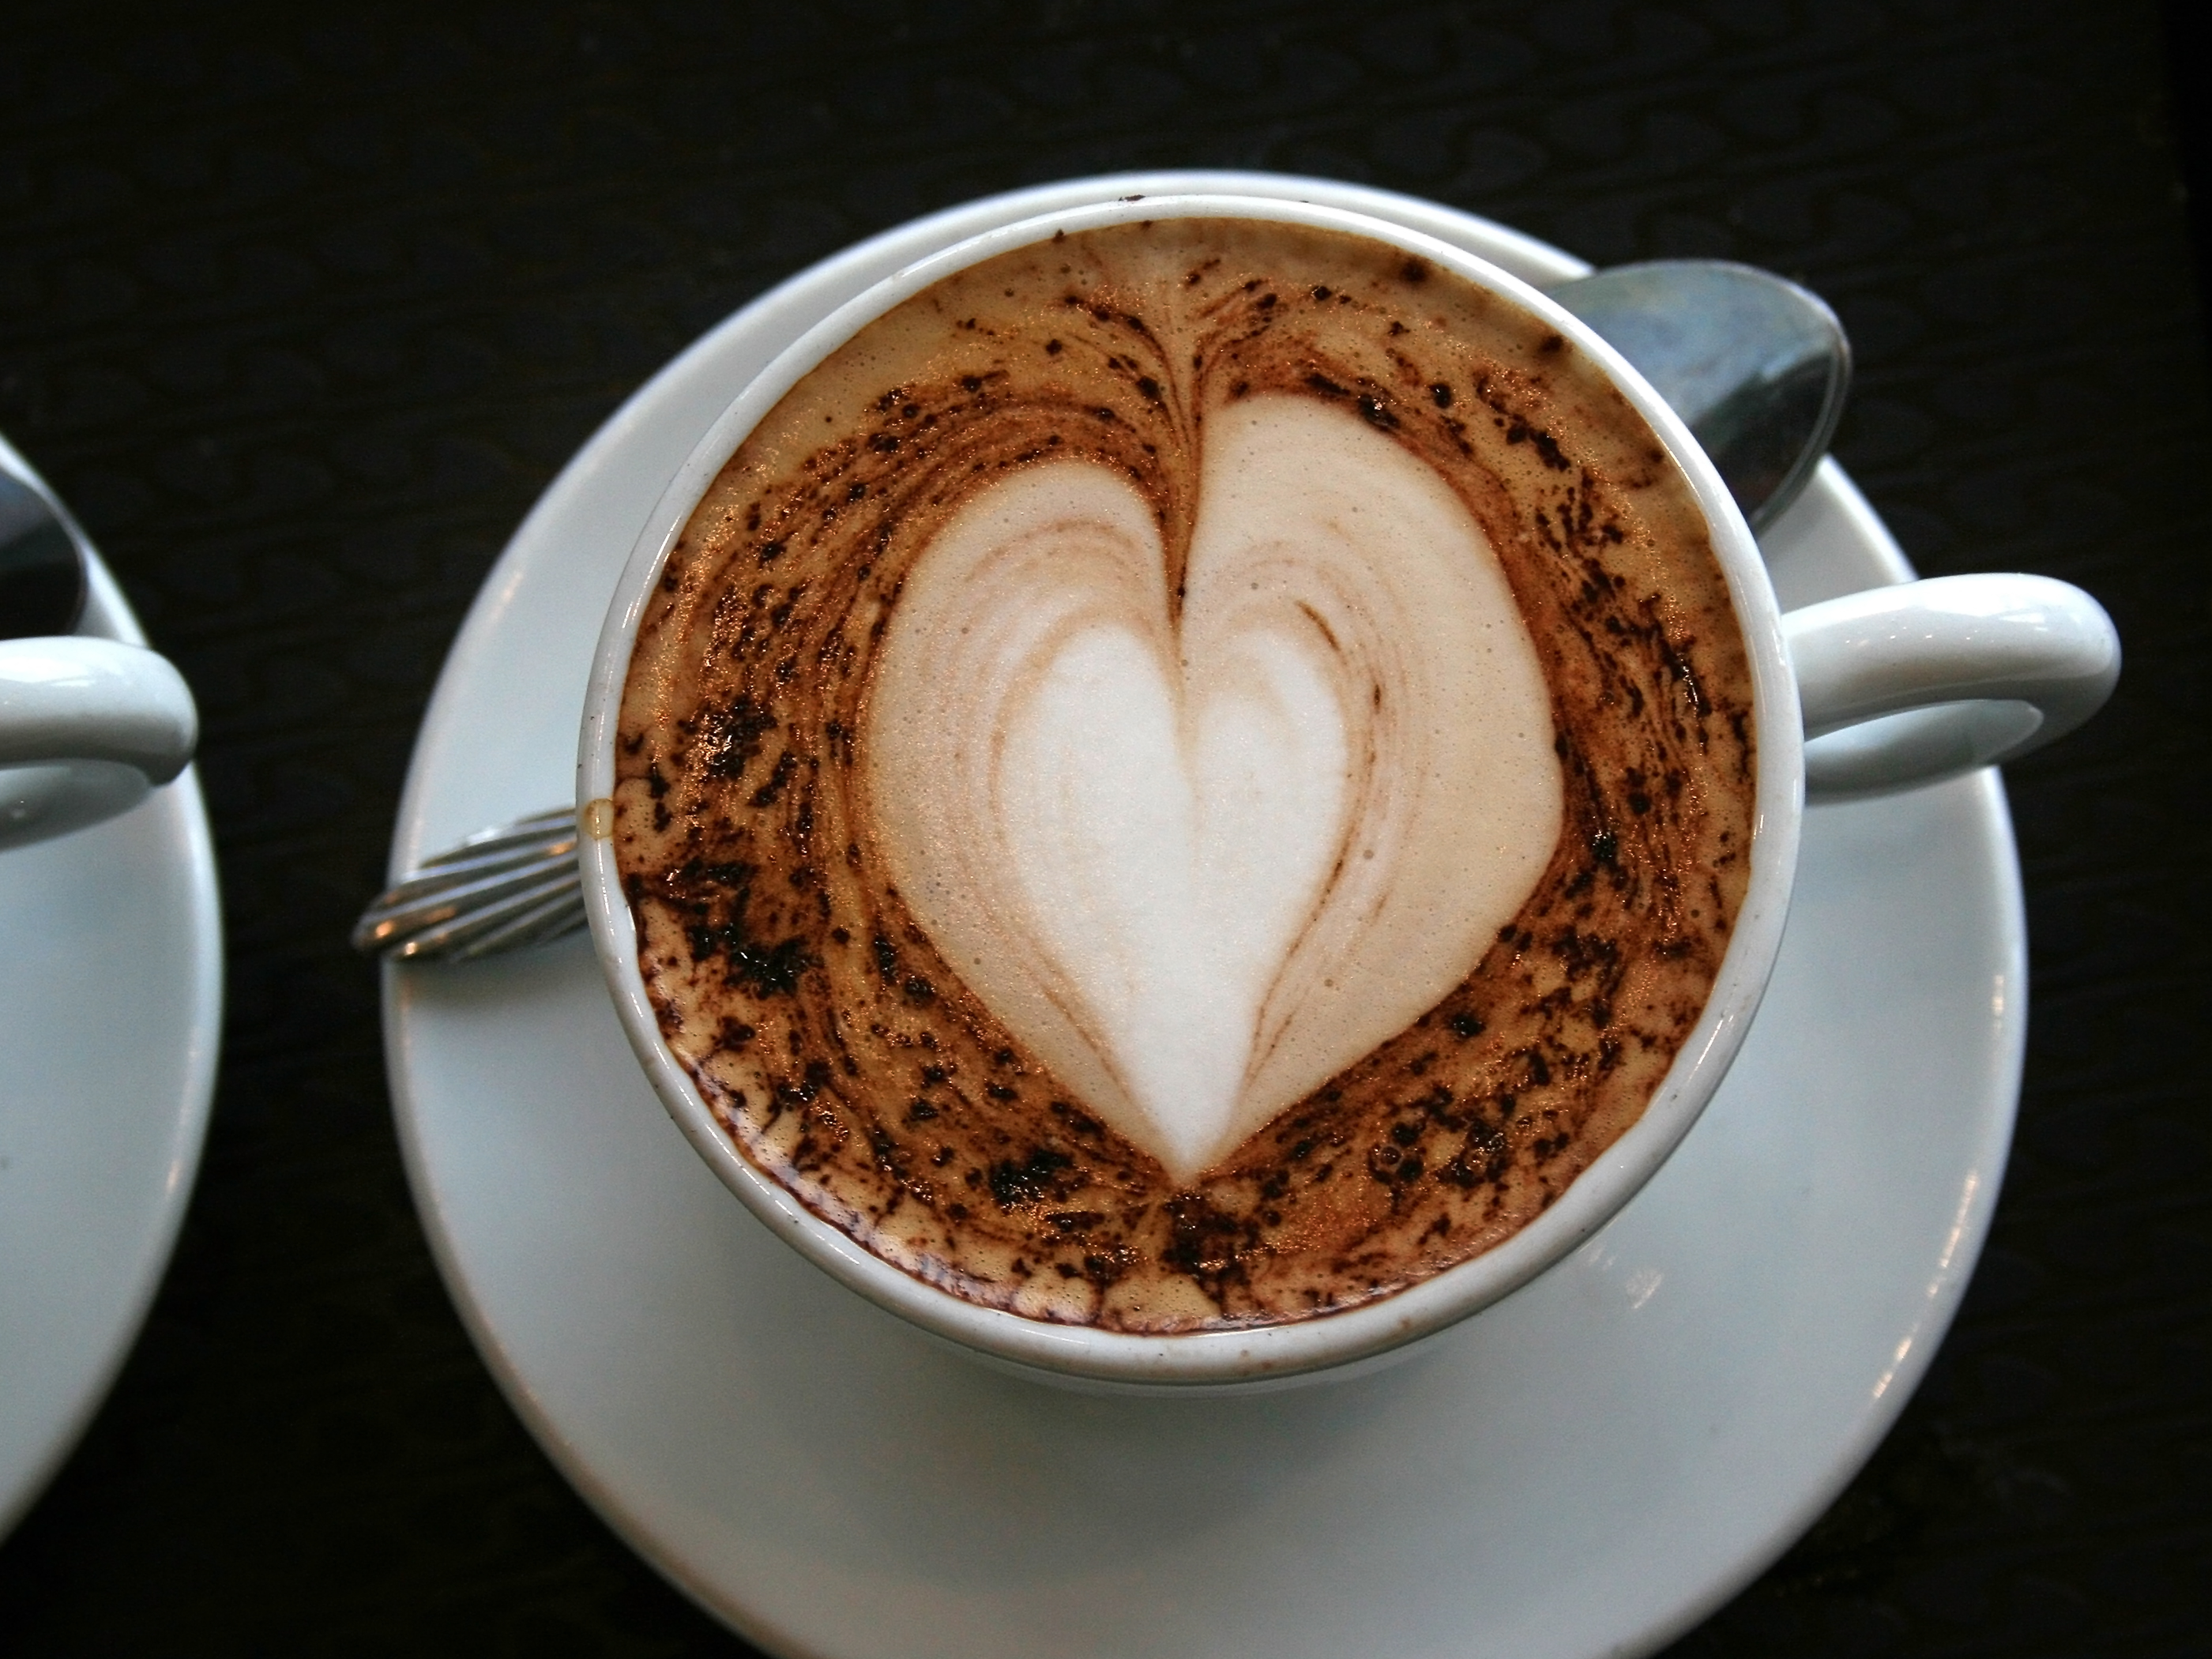 Forum on this topic: Do Pregnancy And Coffee Mix, do-pregnancy-and-coffee-mix/